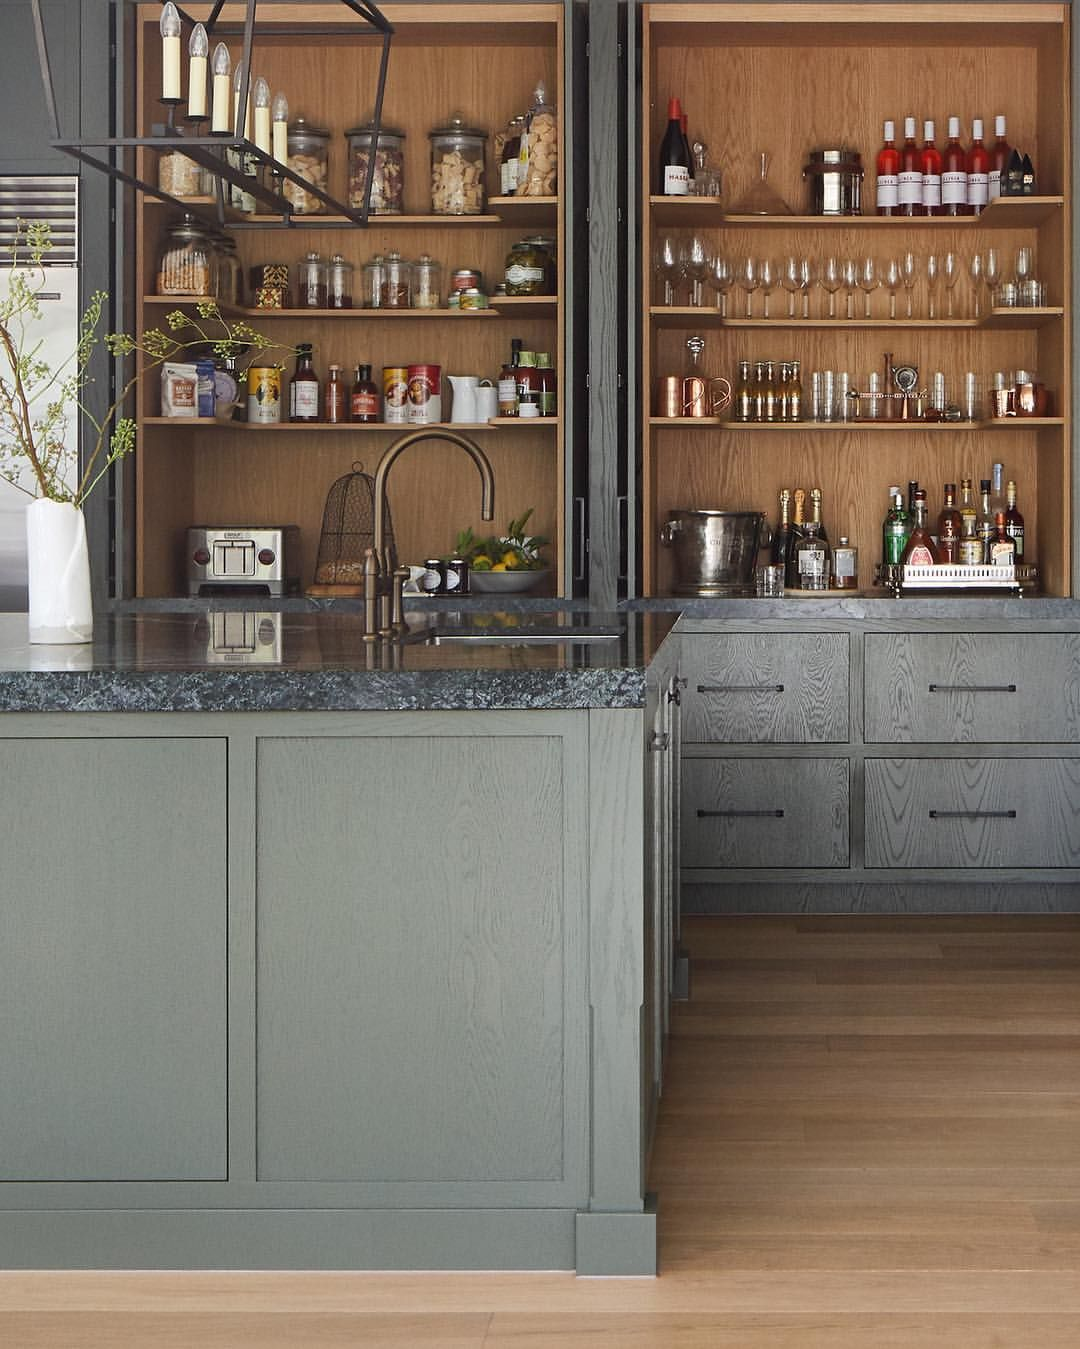 At Beechwood We Made A Conscious Decision Not To Have A Butler S Pantry The Trend Of Recent Years Has Been To Have Second Kitch Kate Walker Beechwood Kitchen